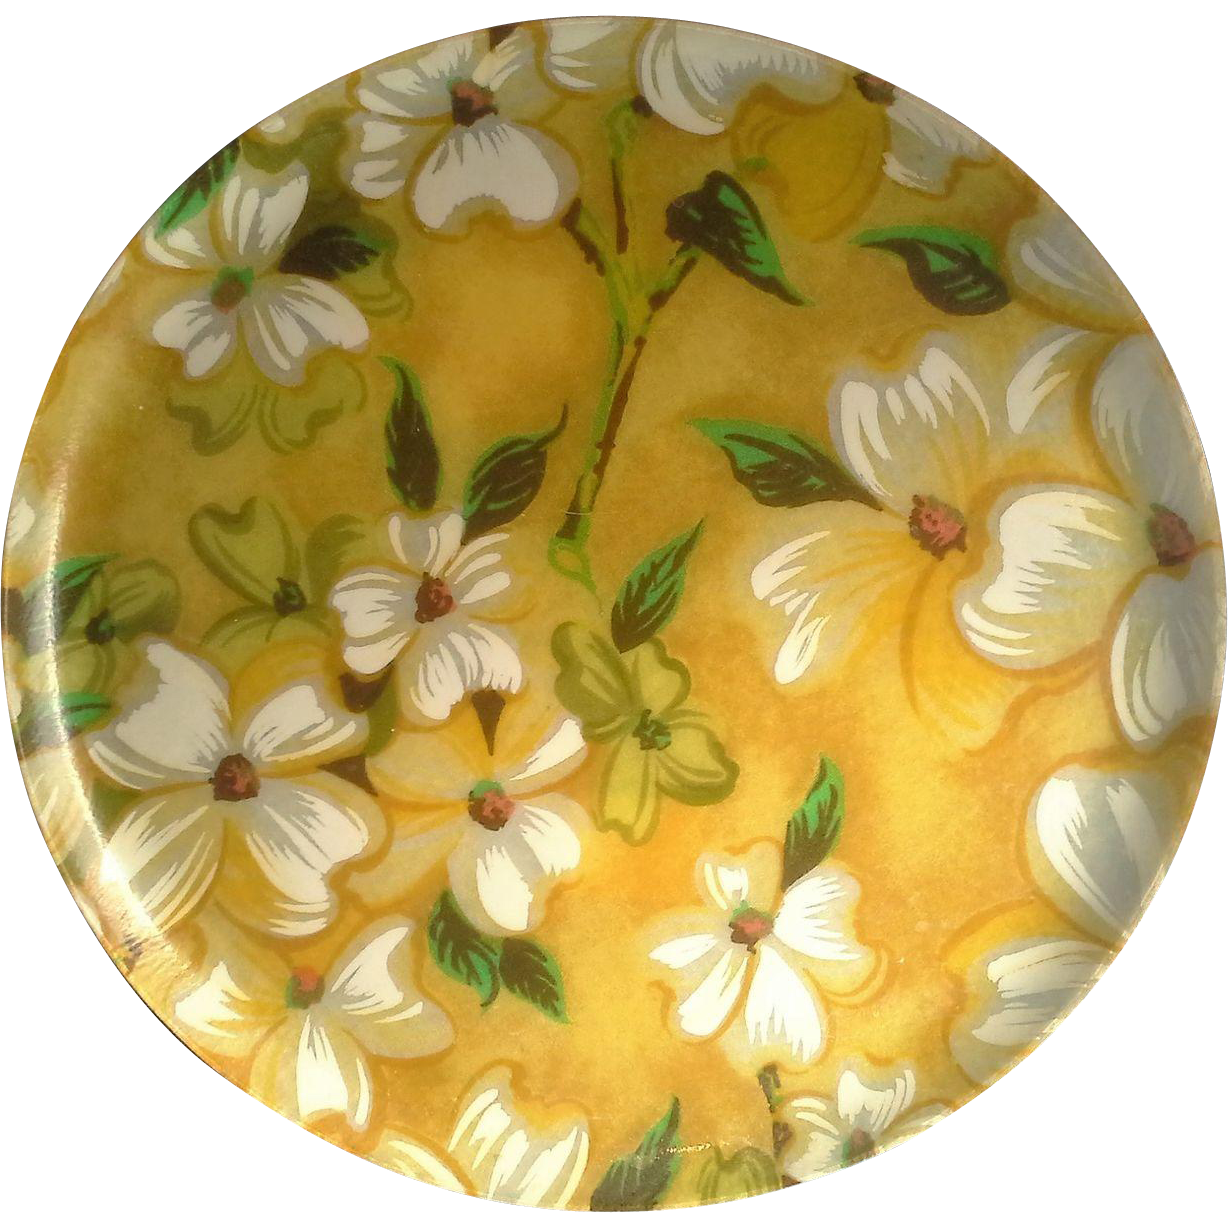 Traymold Fiberglass Yellow White Floral Round Tray Plate Vintage 11 IN